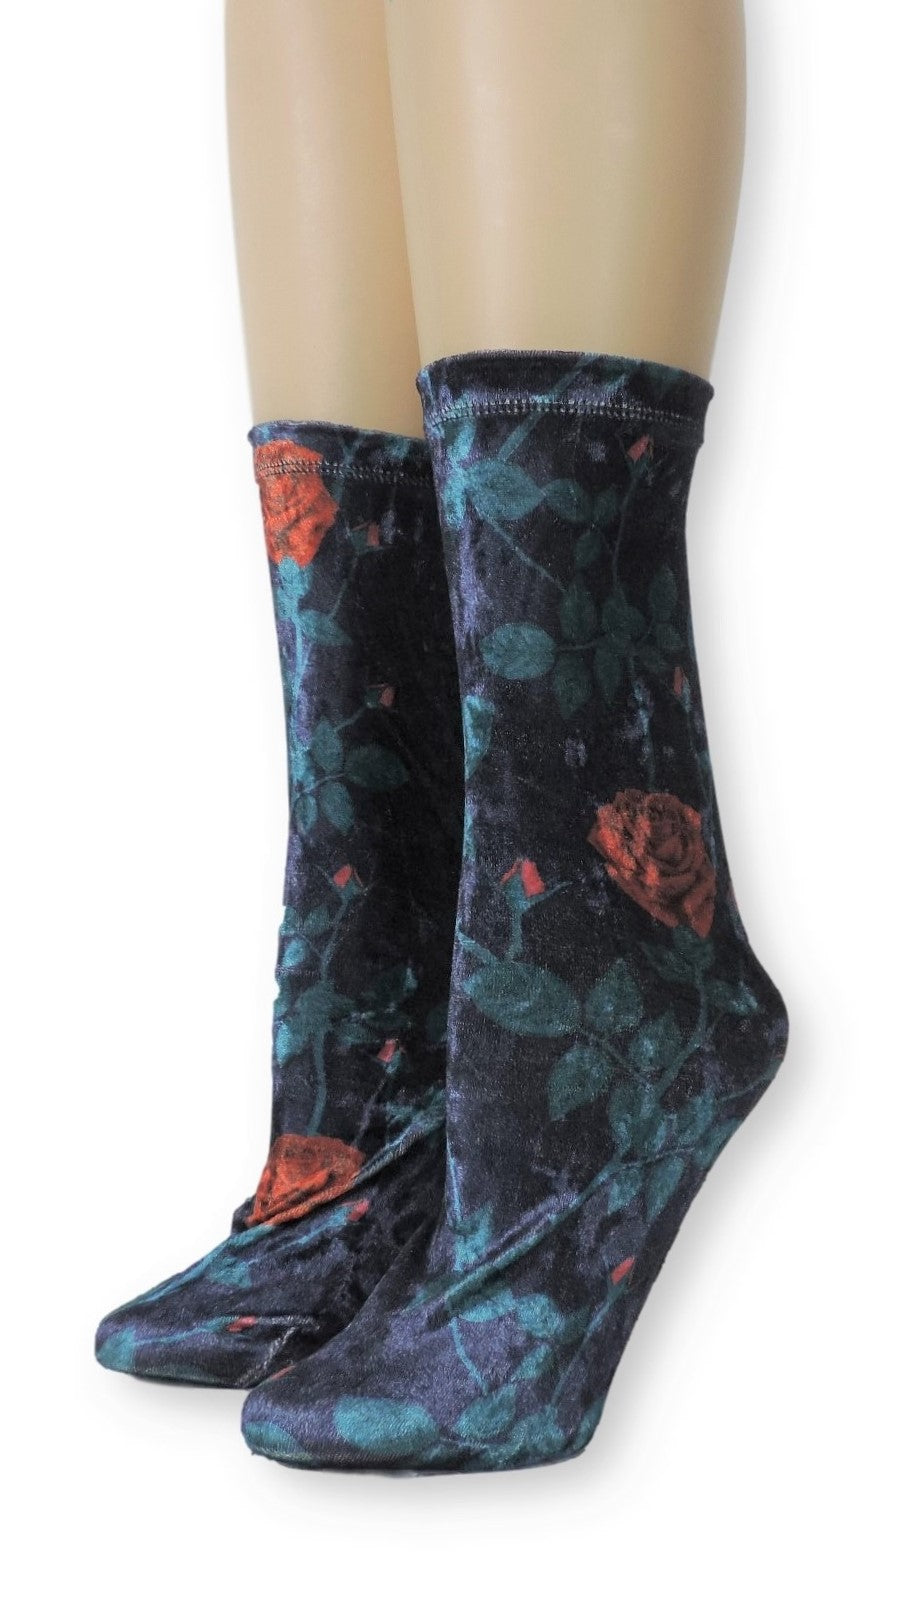 Red Rose Crushed Velvet Socks - Global Trendz Fashion®